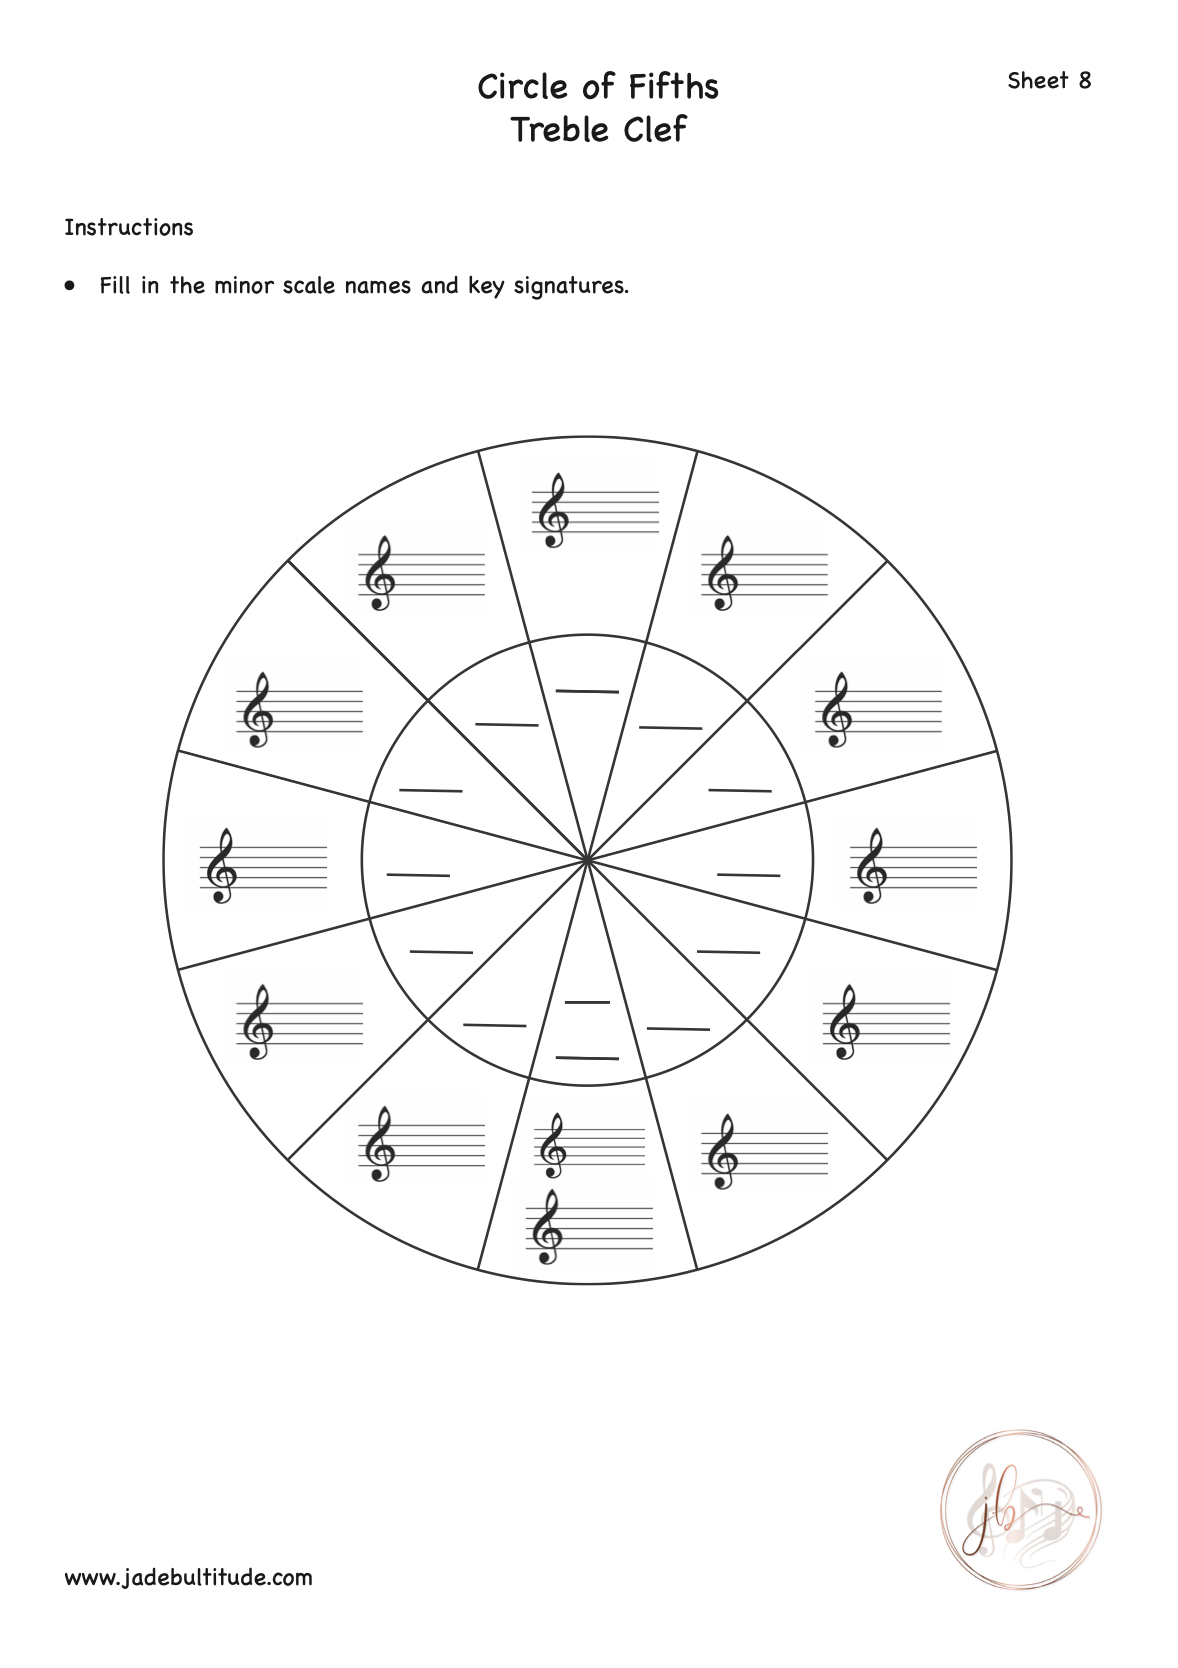 Circle Of Fifths Worksheet Treble Clef